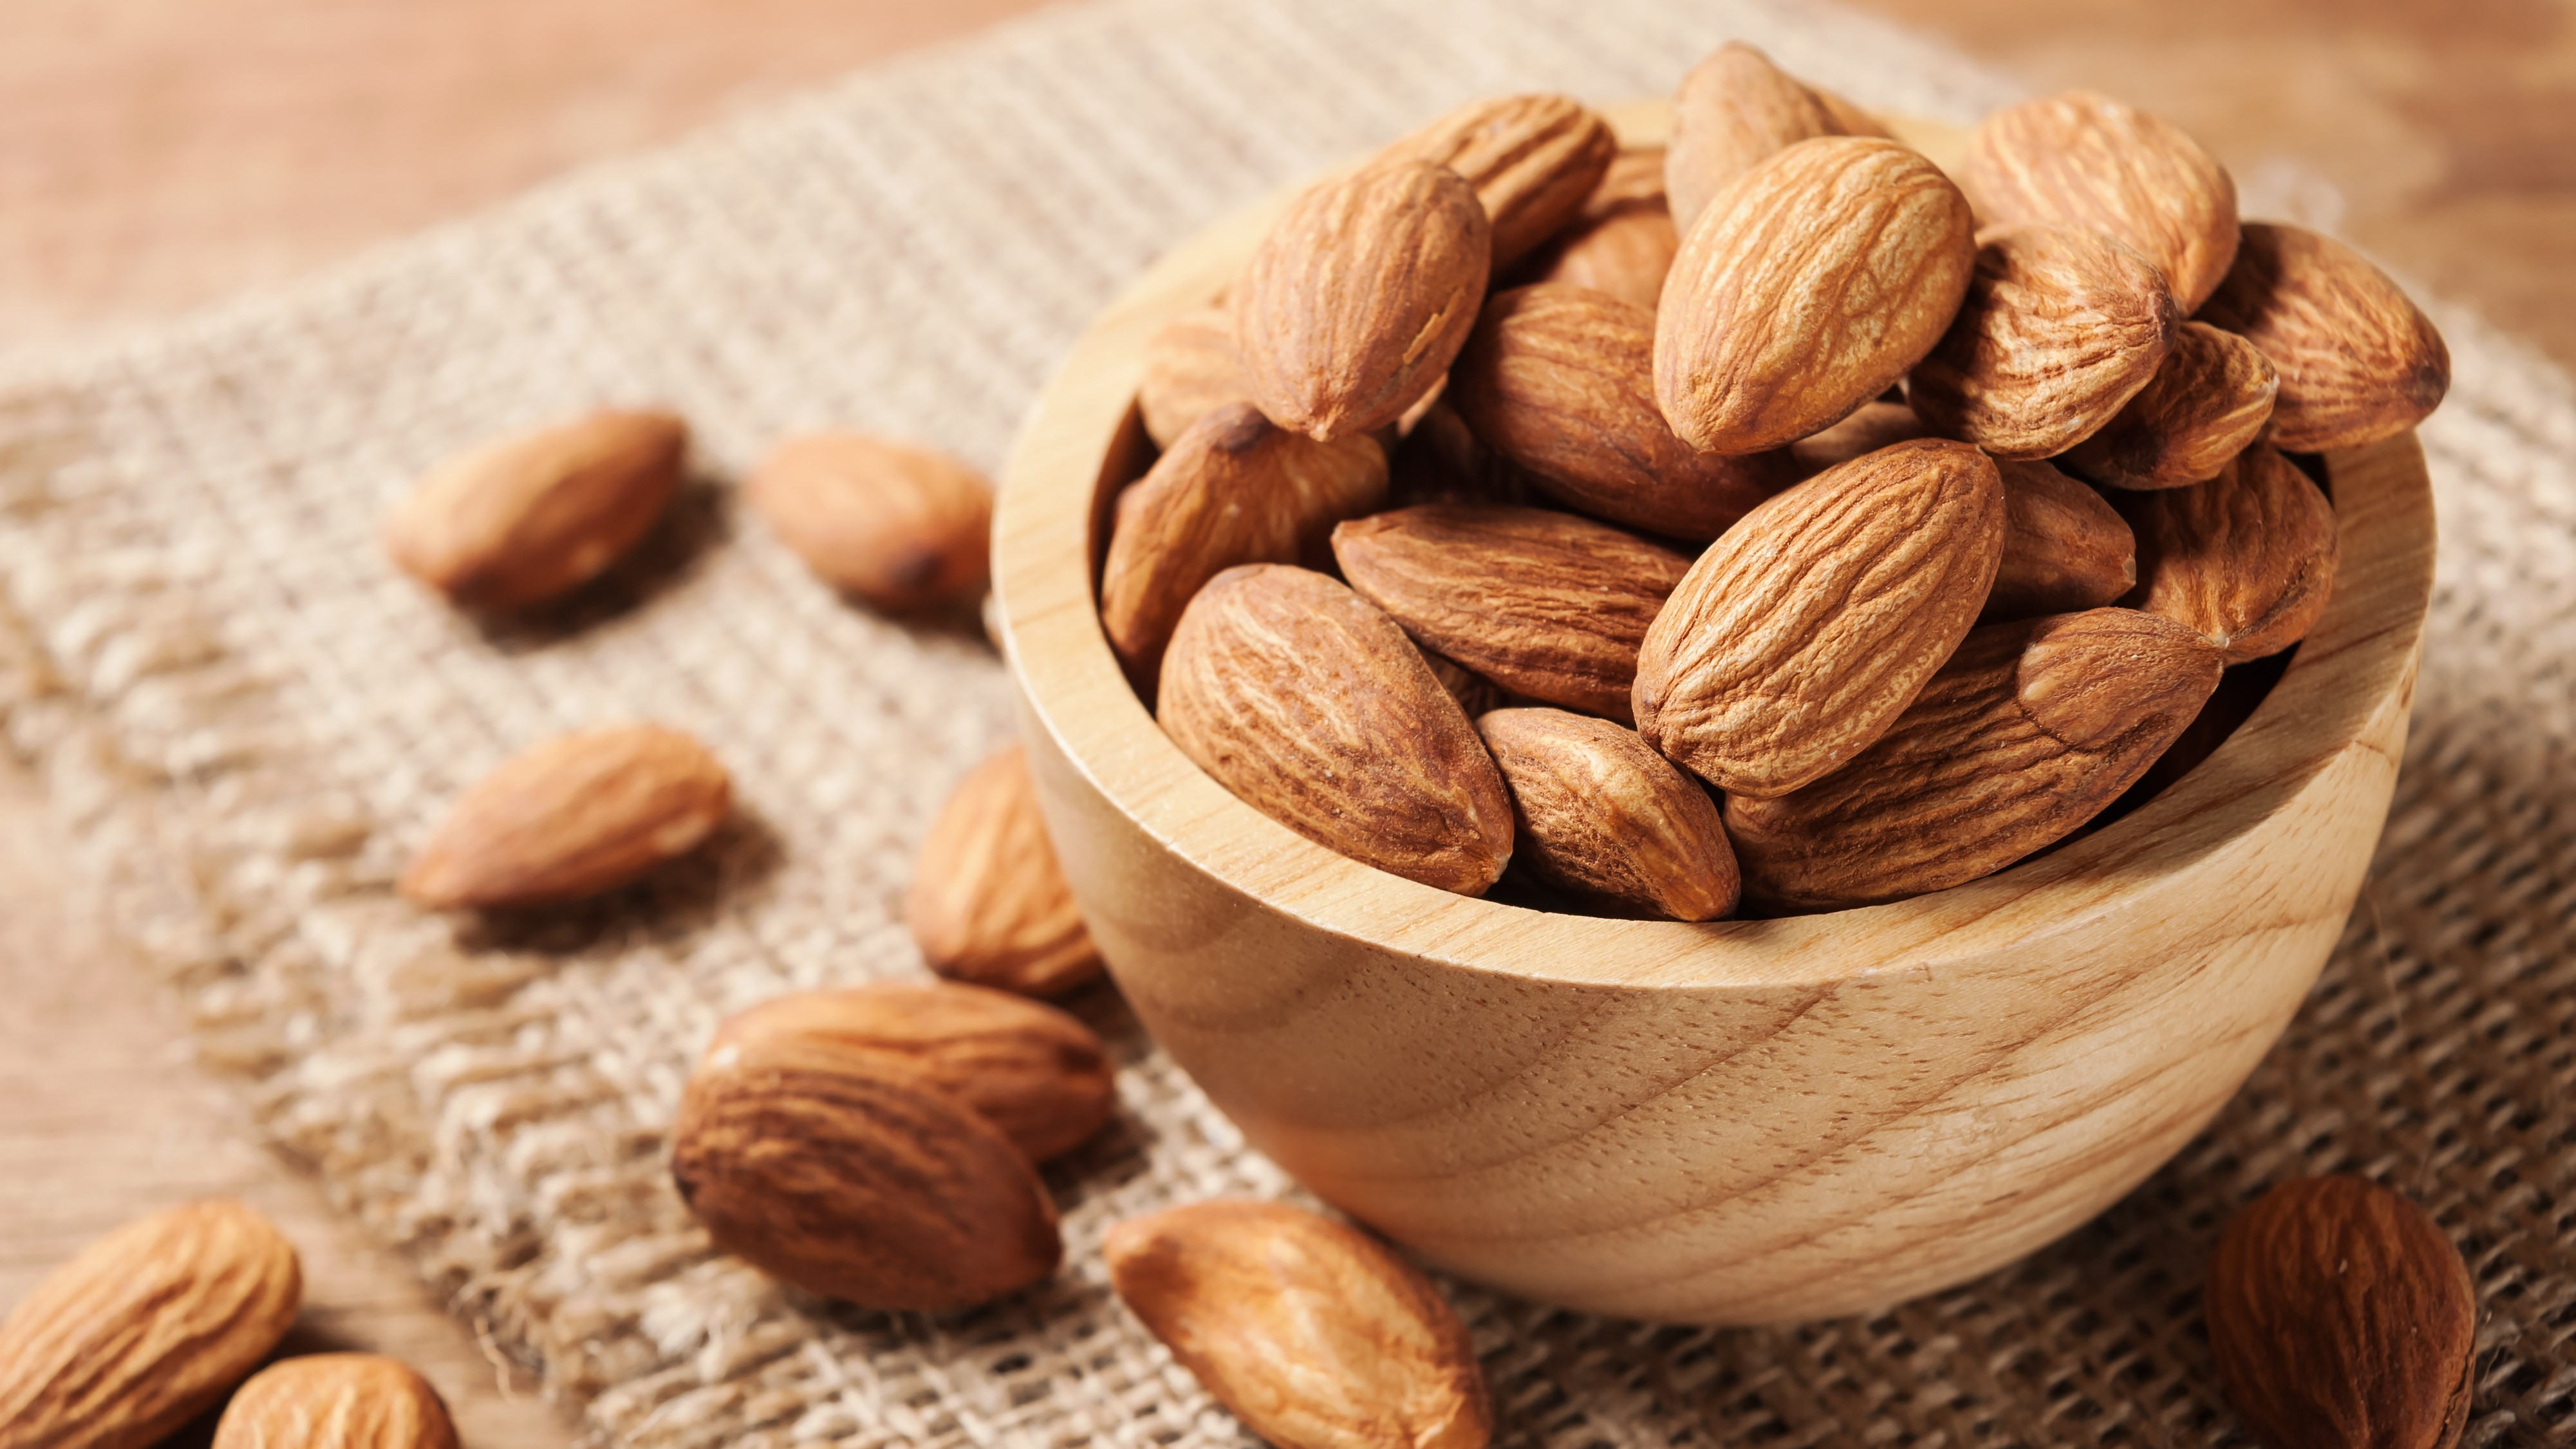 Almond snack fruit in wooden bowl